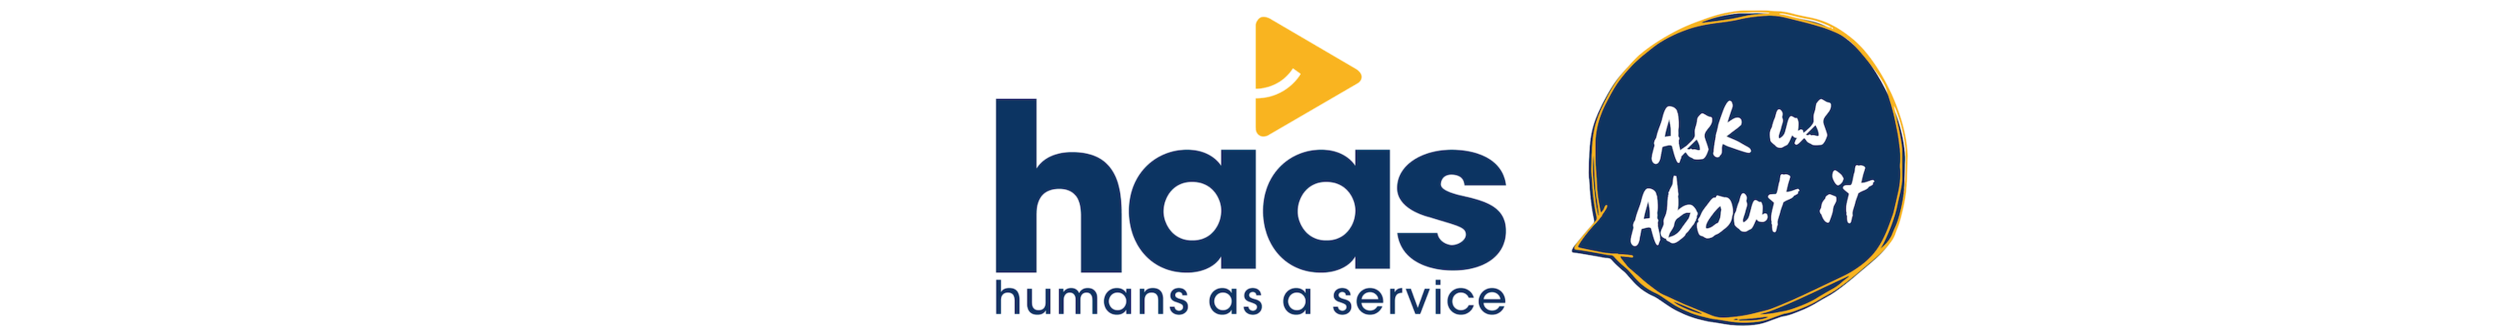 Ask us About The HaaS (Humans as as Service)3 (3).png